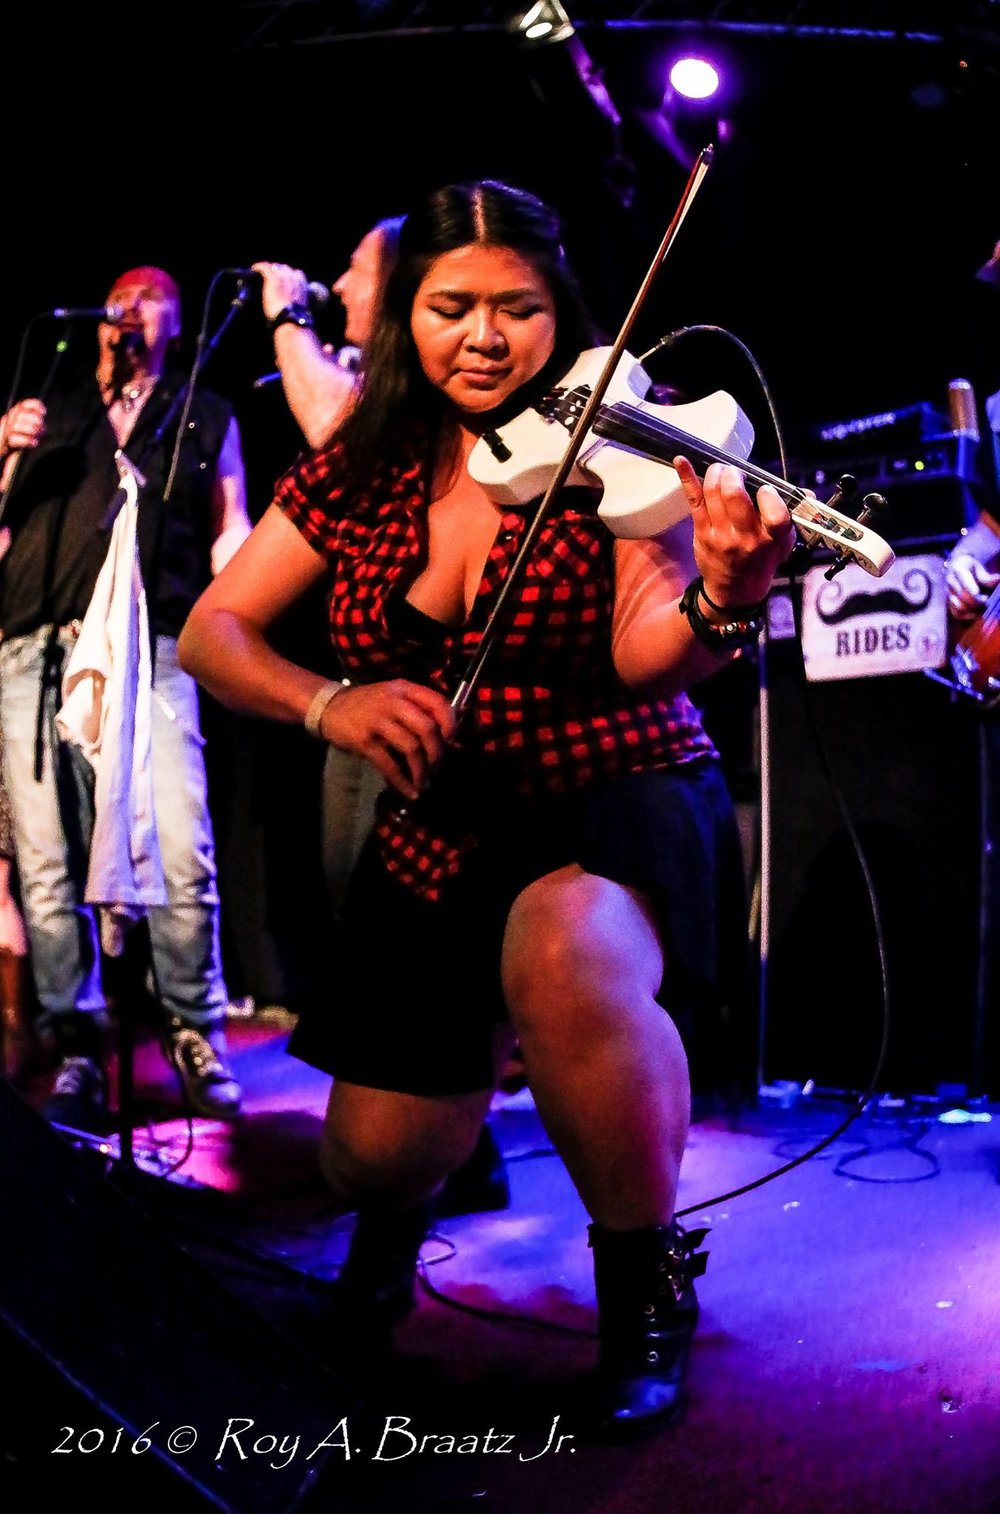 Photo by Roy Braatz, Jr. at Ultimate Jam Night at the Whisky-A-Gogo